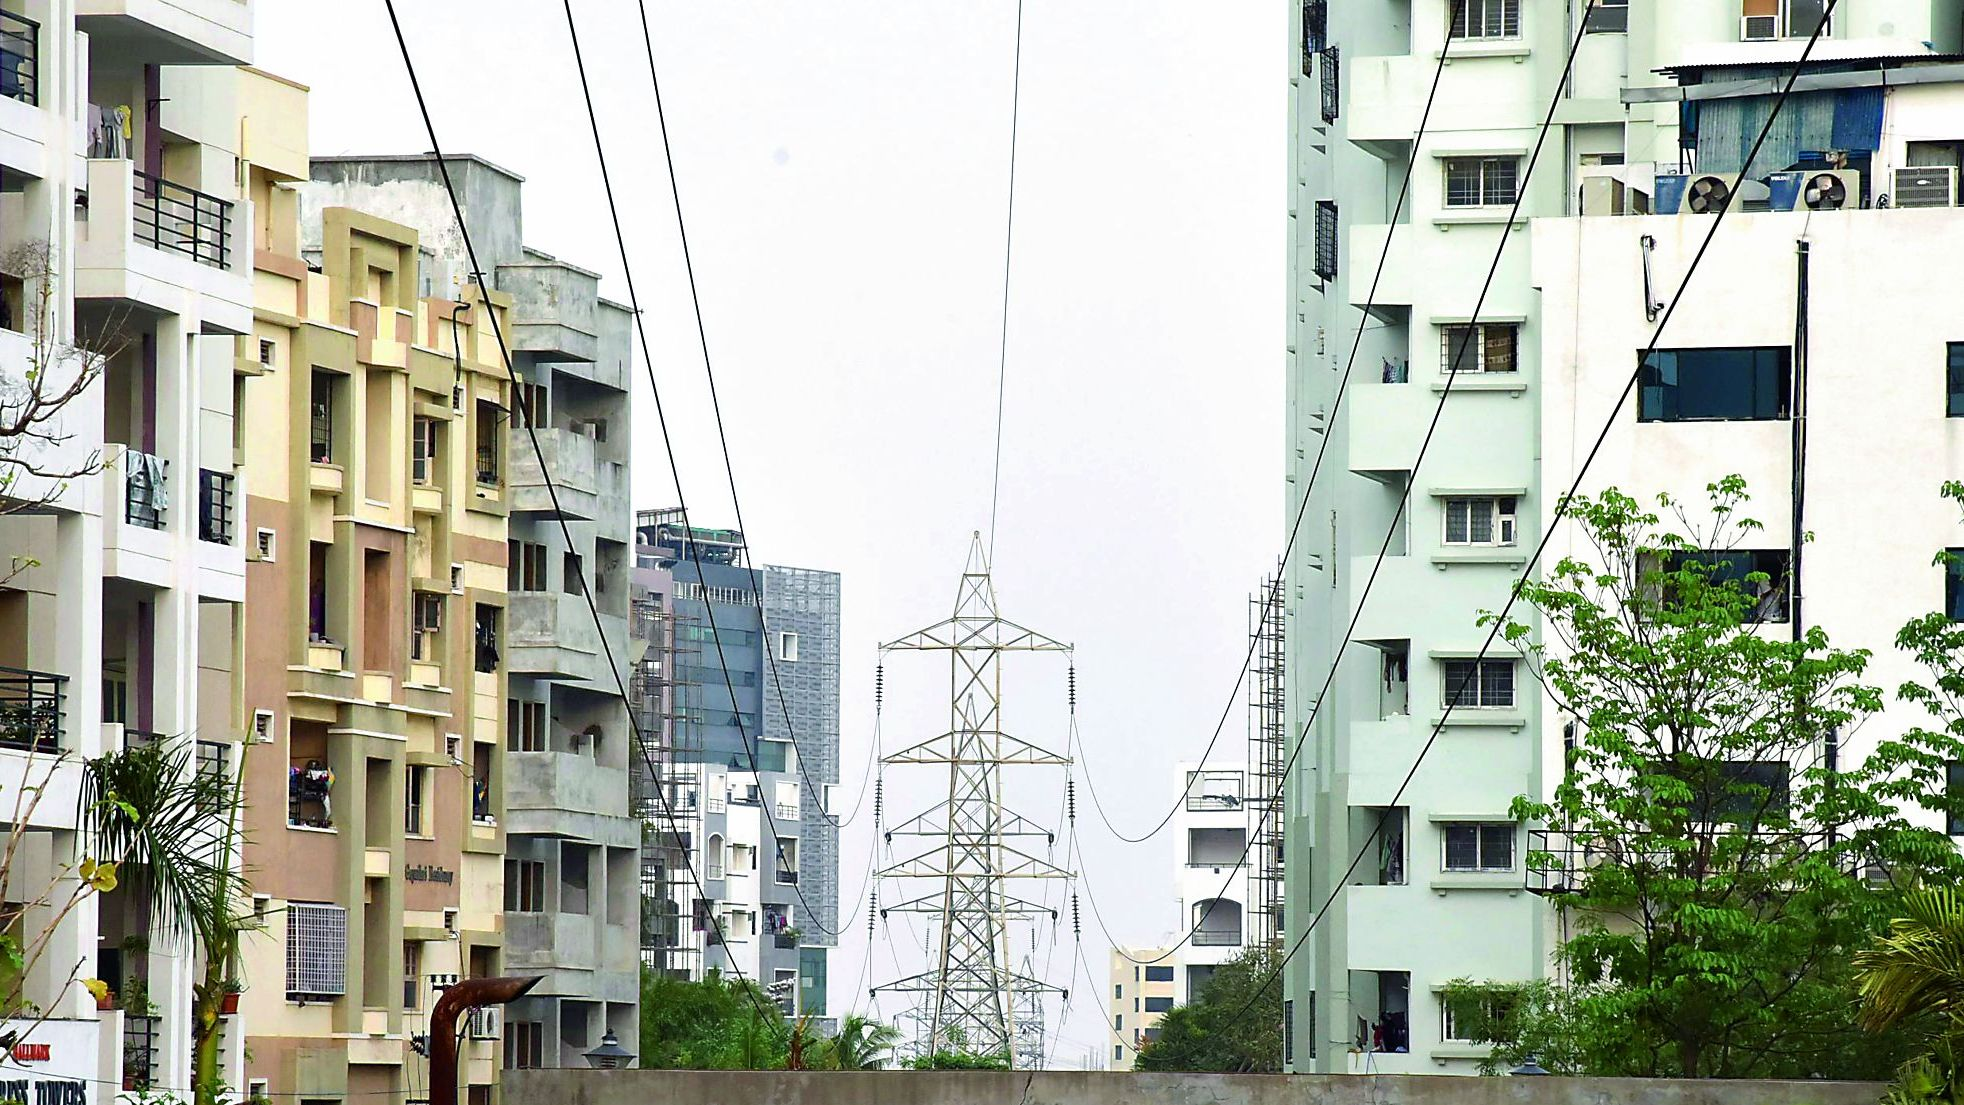 Danger zone: Live electricity wires endanger citizens lives in Hyderabad